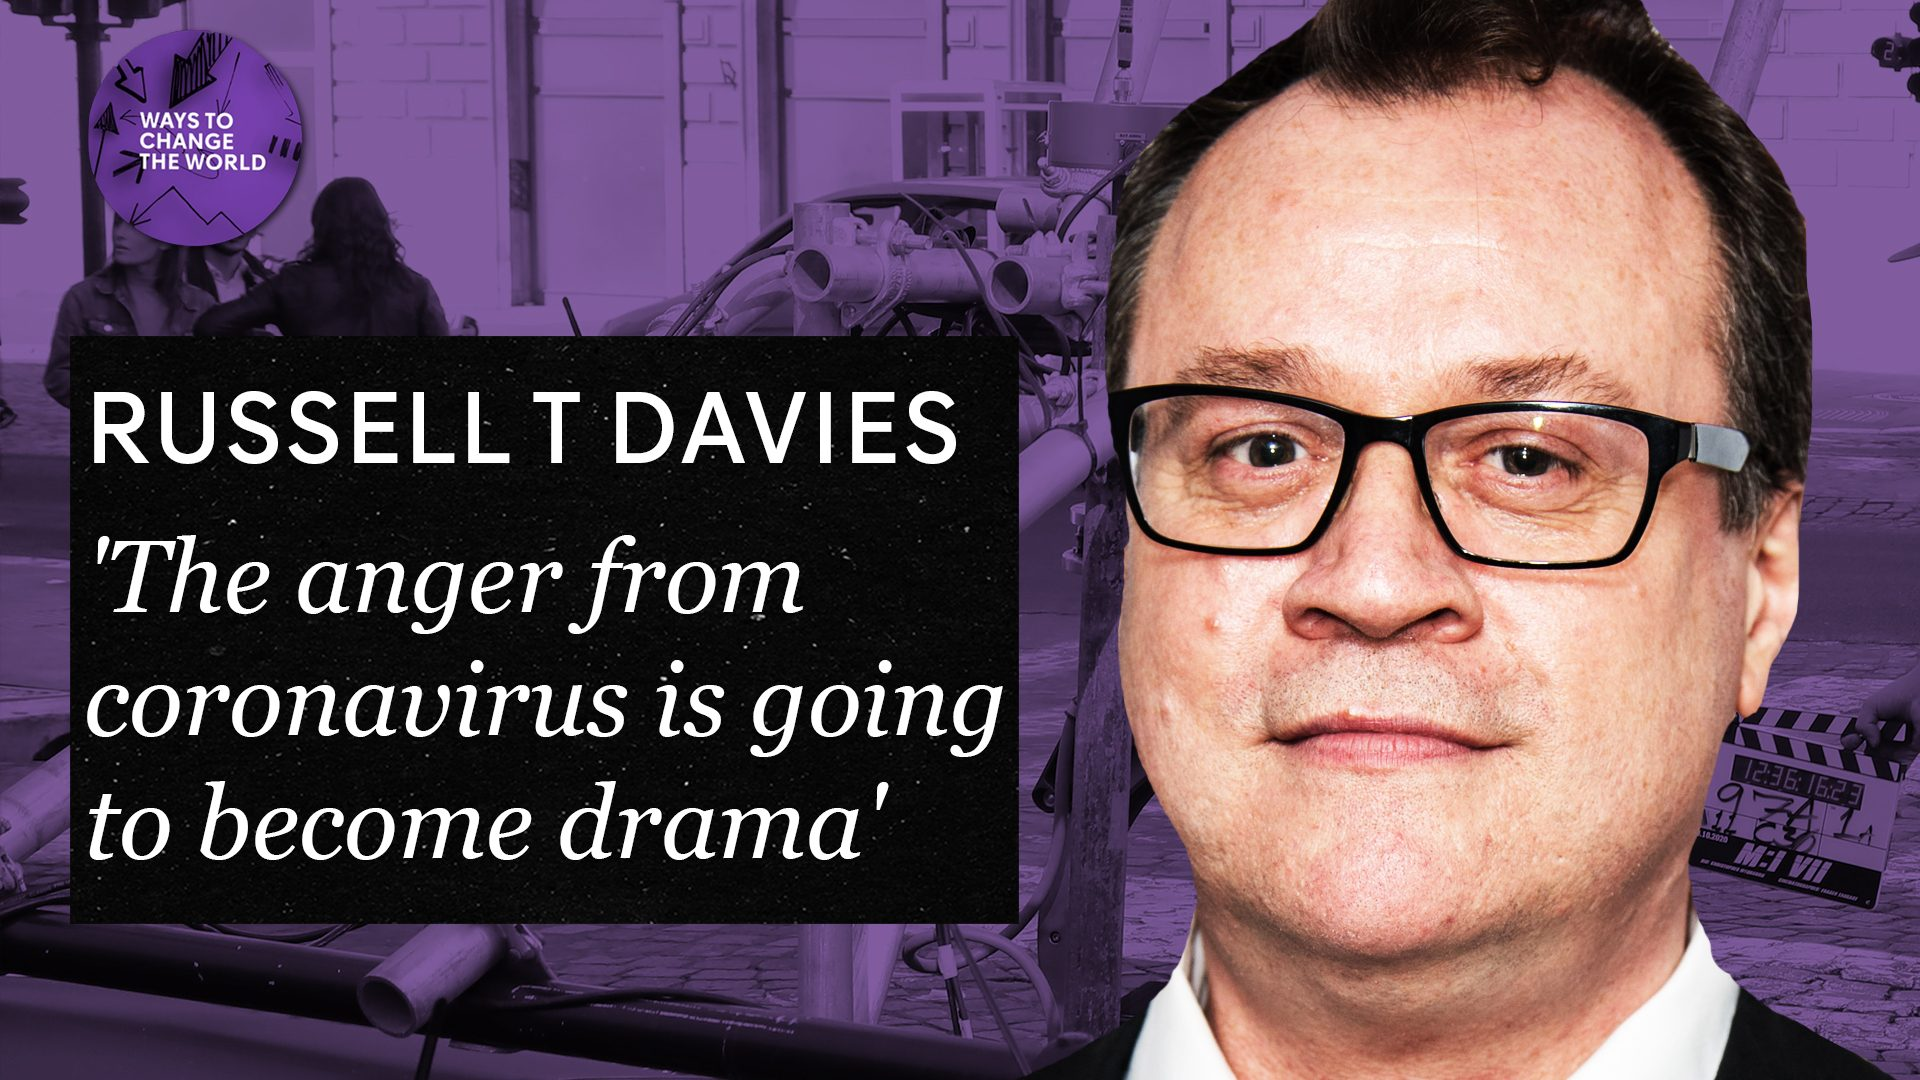 Series 6, Episode 23: Russell T Davies - channel 4